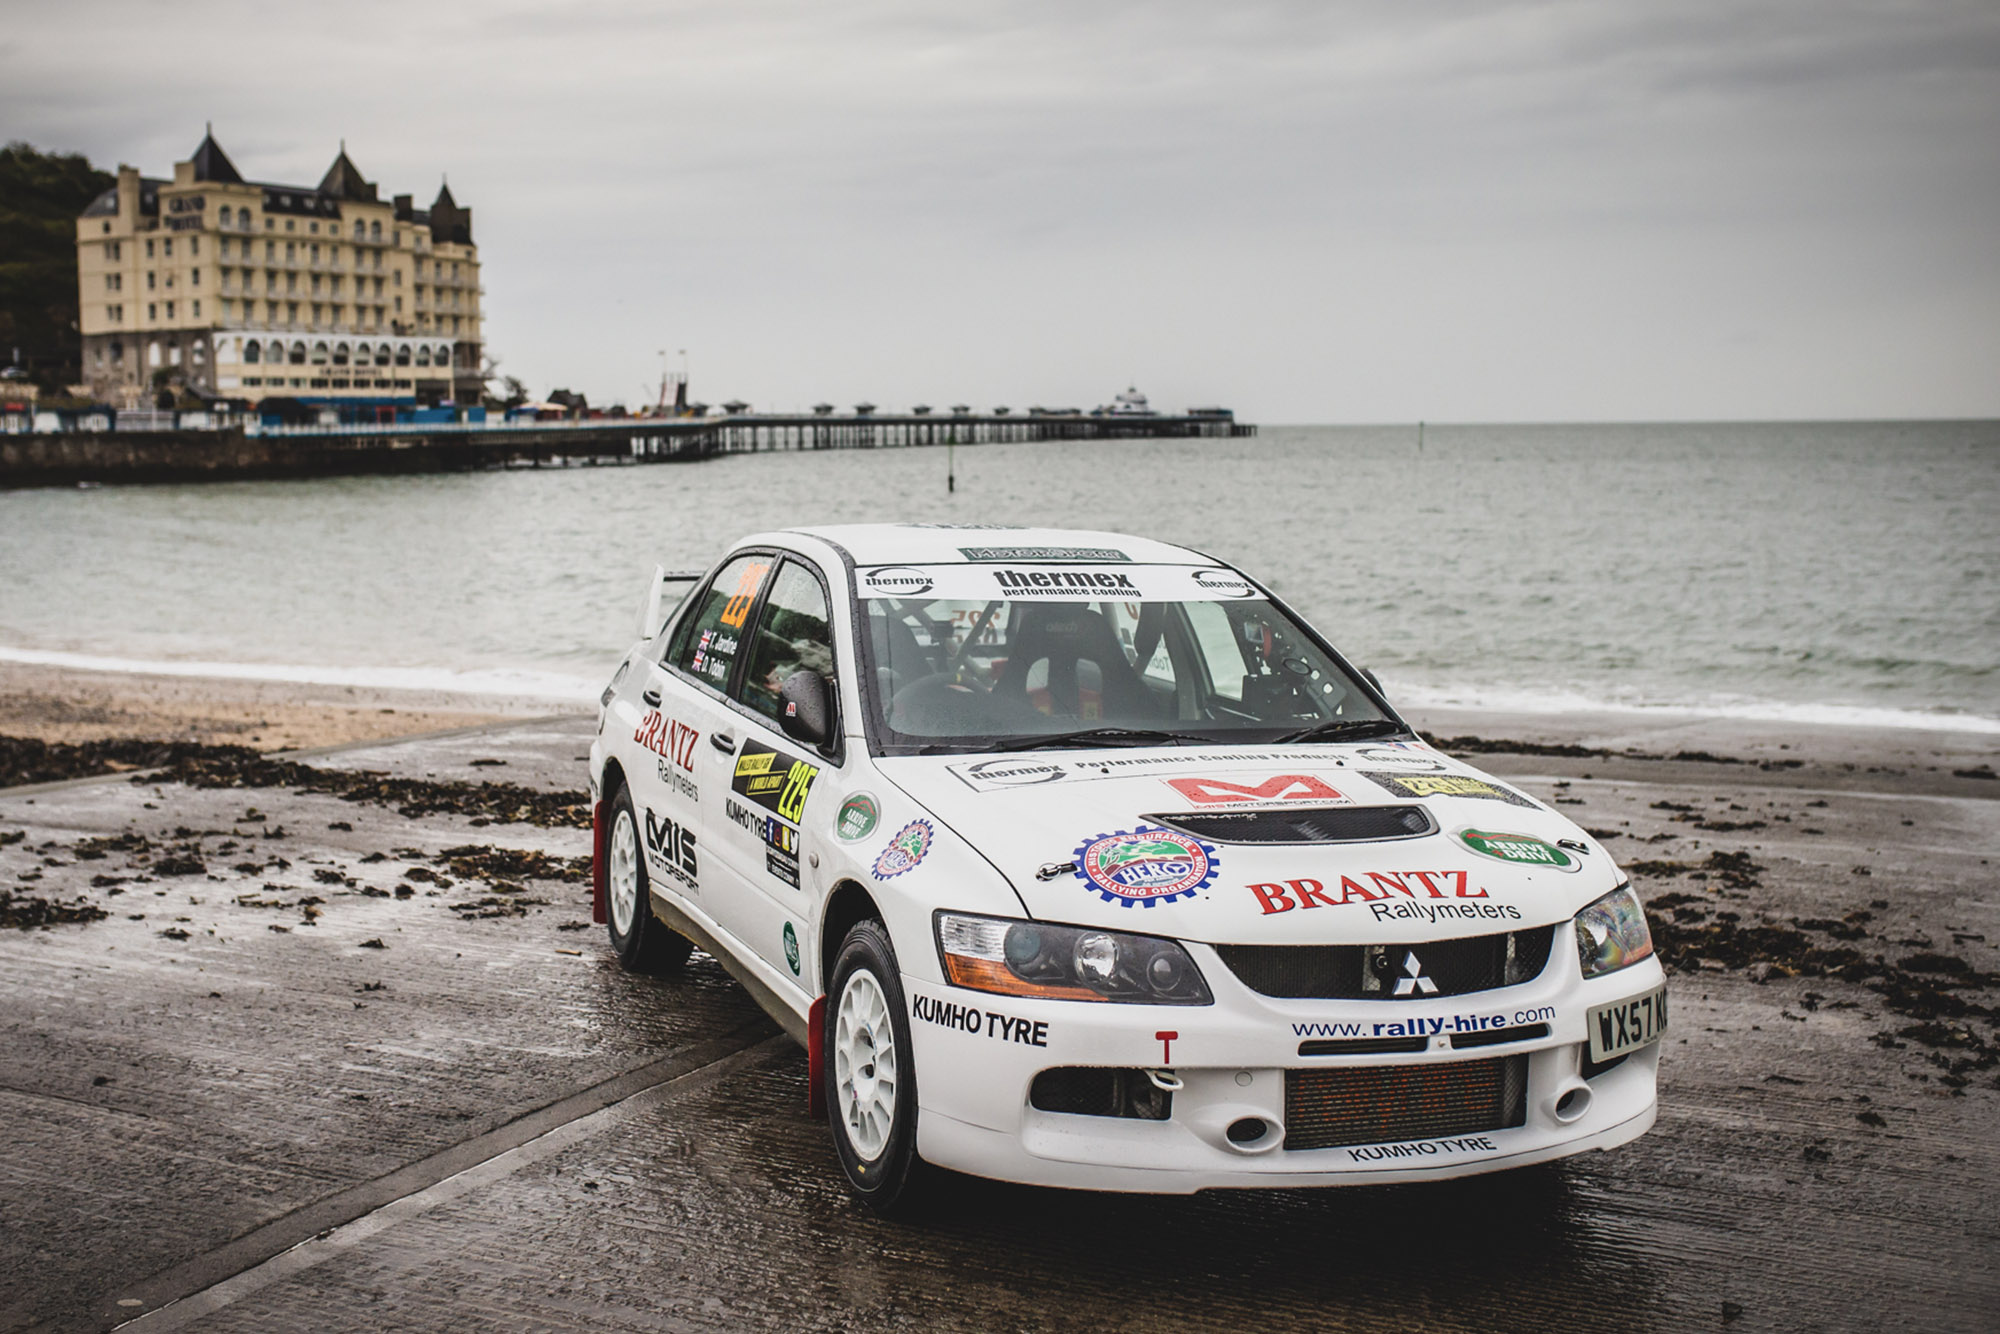 Motor Sport at Wales Rally GB: pre-event blog